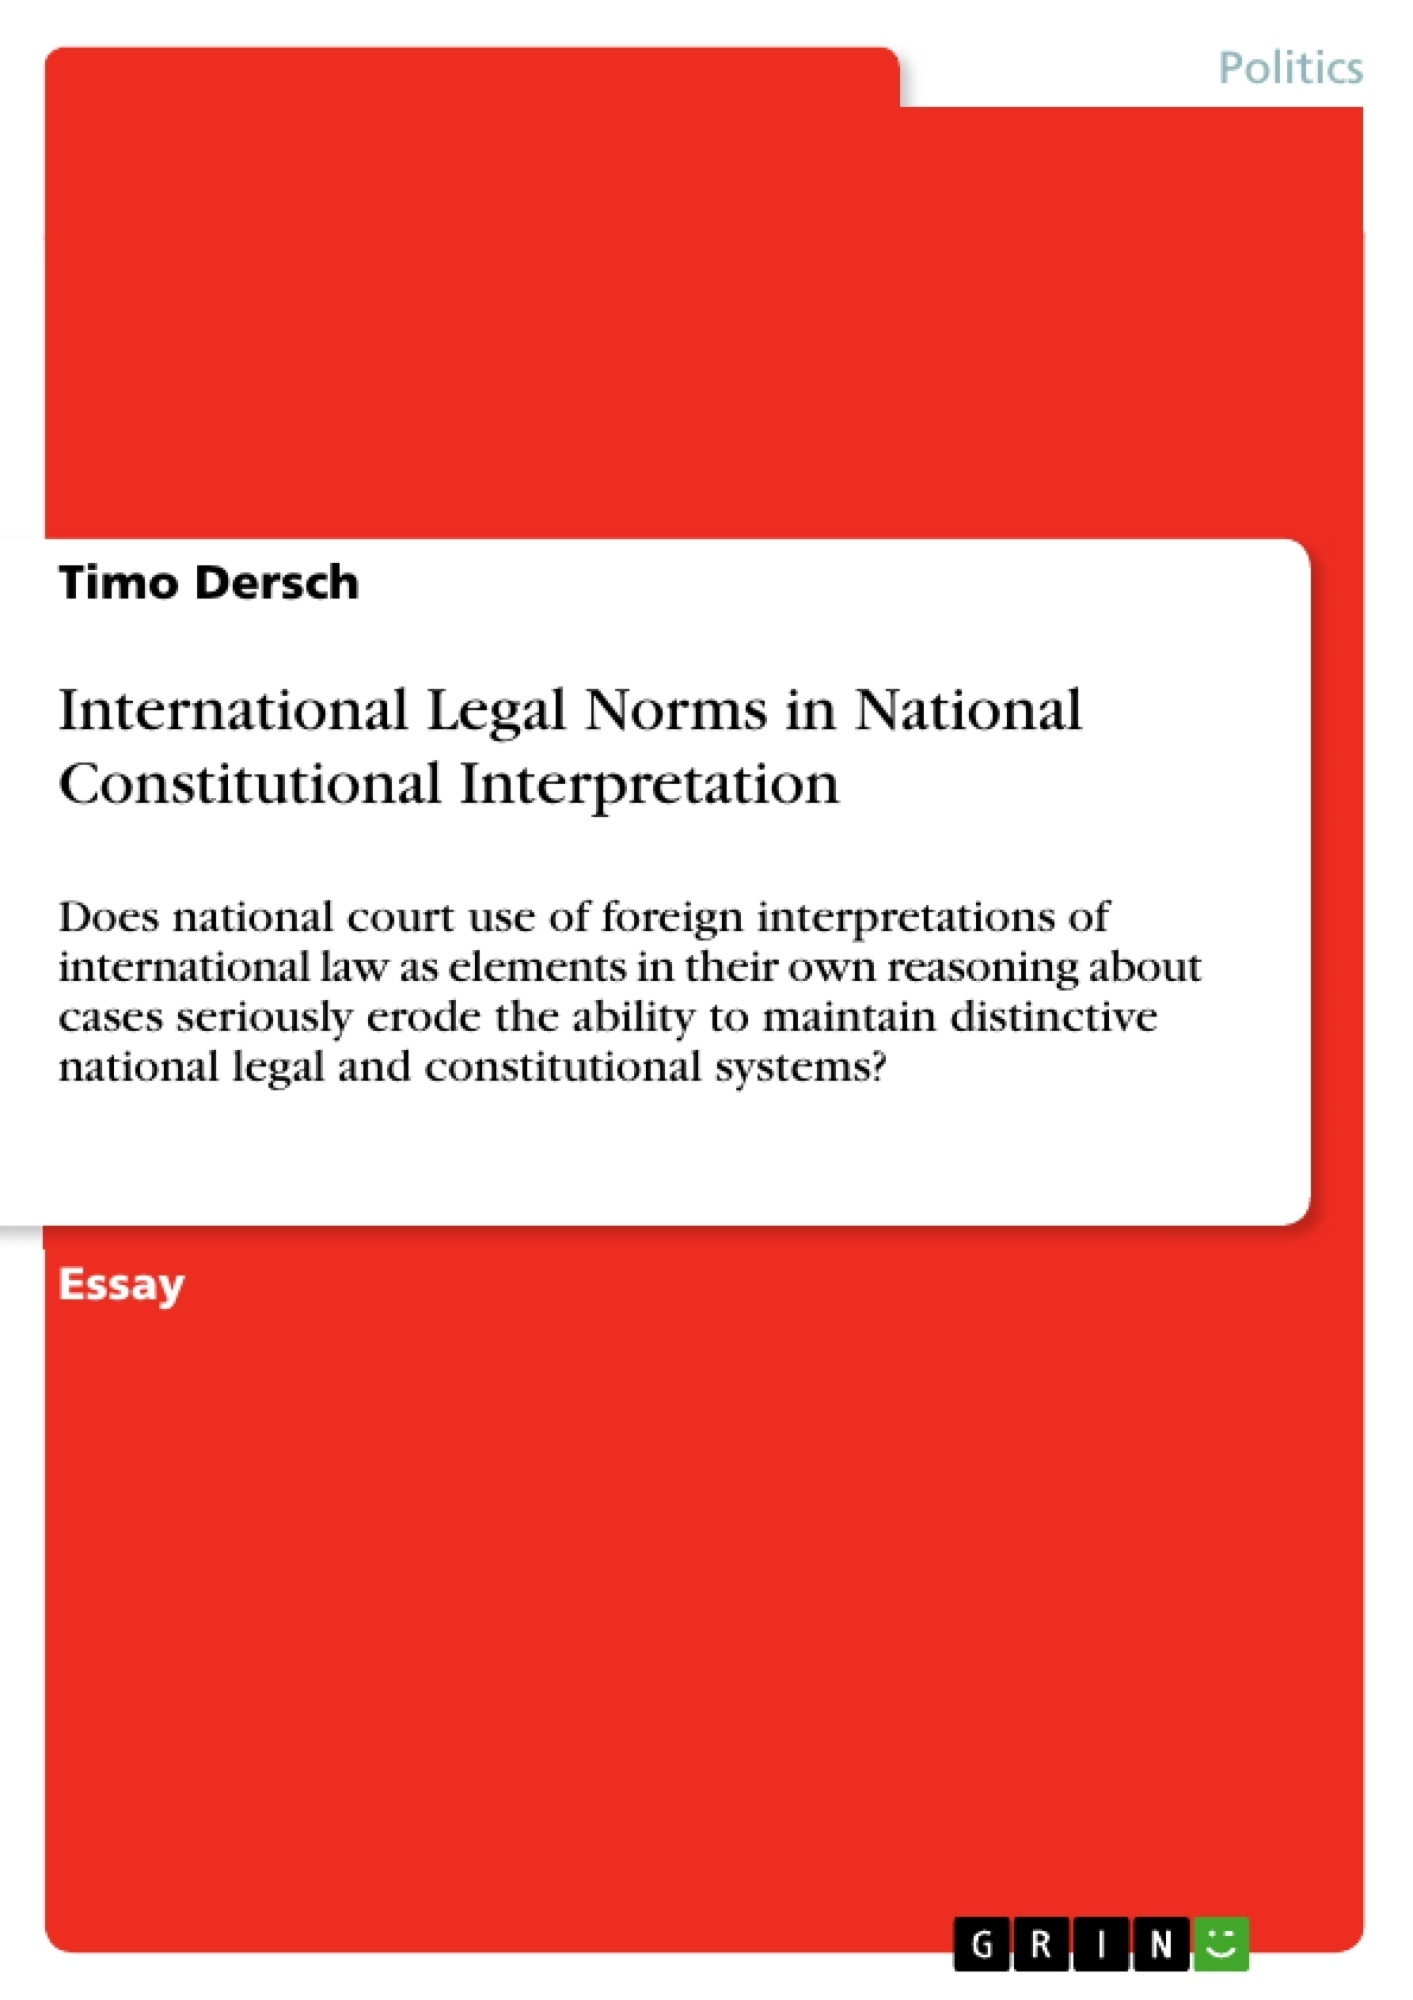 Constitutional legal norms